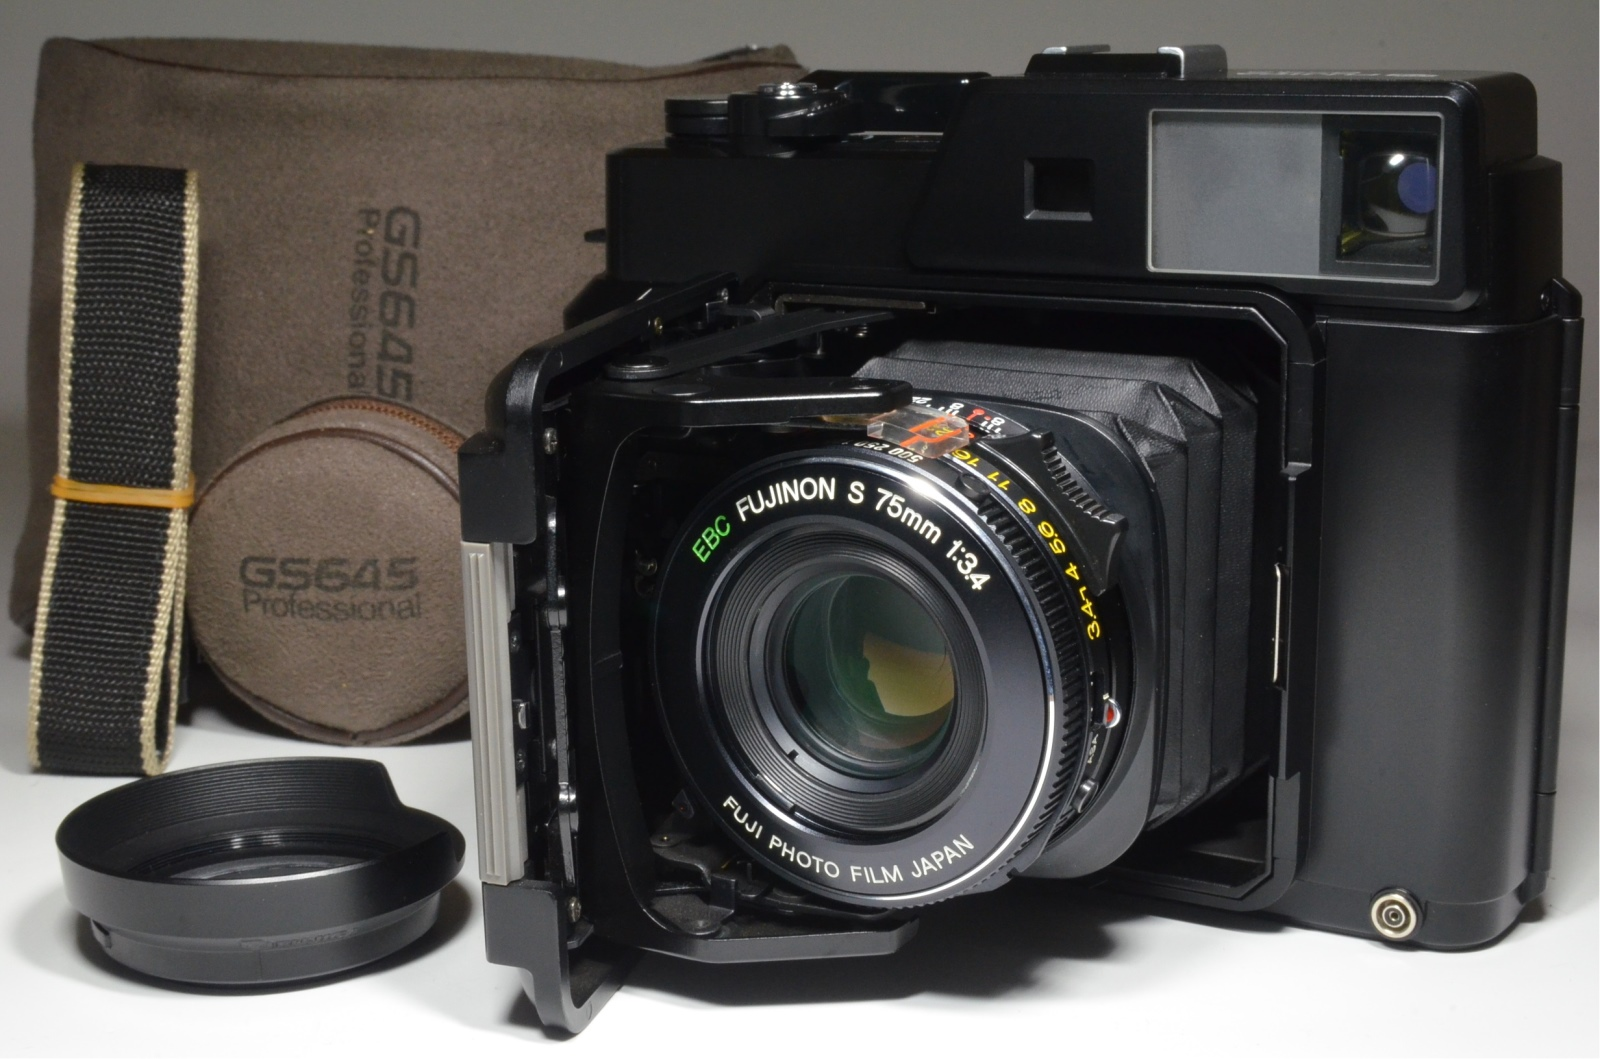 fujifilm fujica gs645 pro fujinon 75mm f3.4 medium format film camera